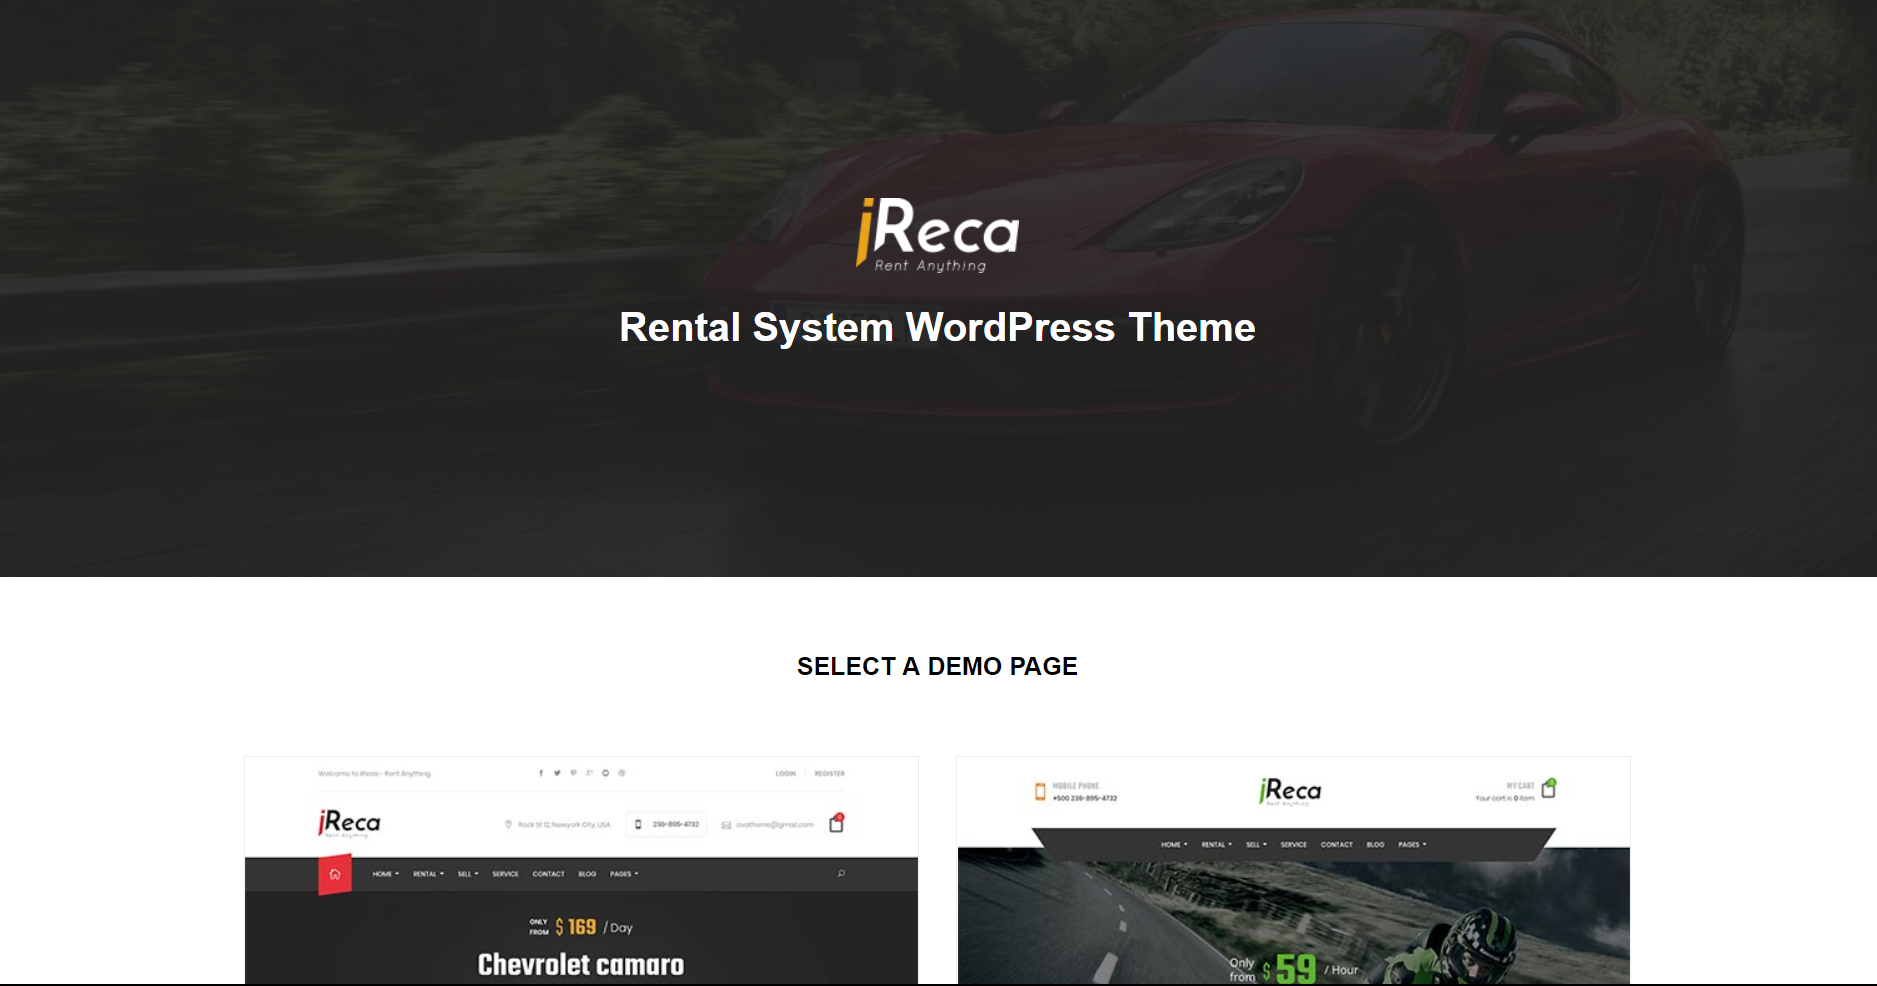 6. Ireca - Car Rental Boat, Bike, Vehicle WordPress Theme